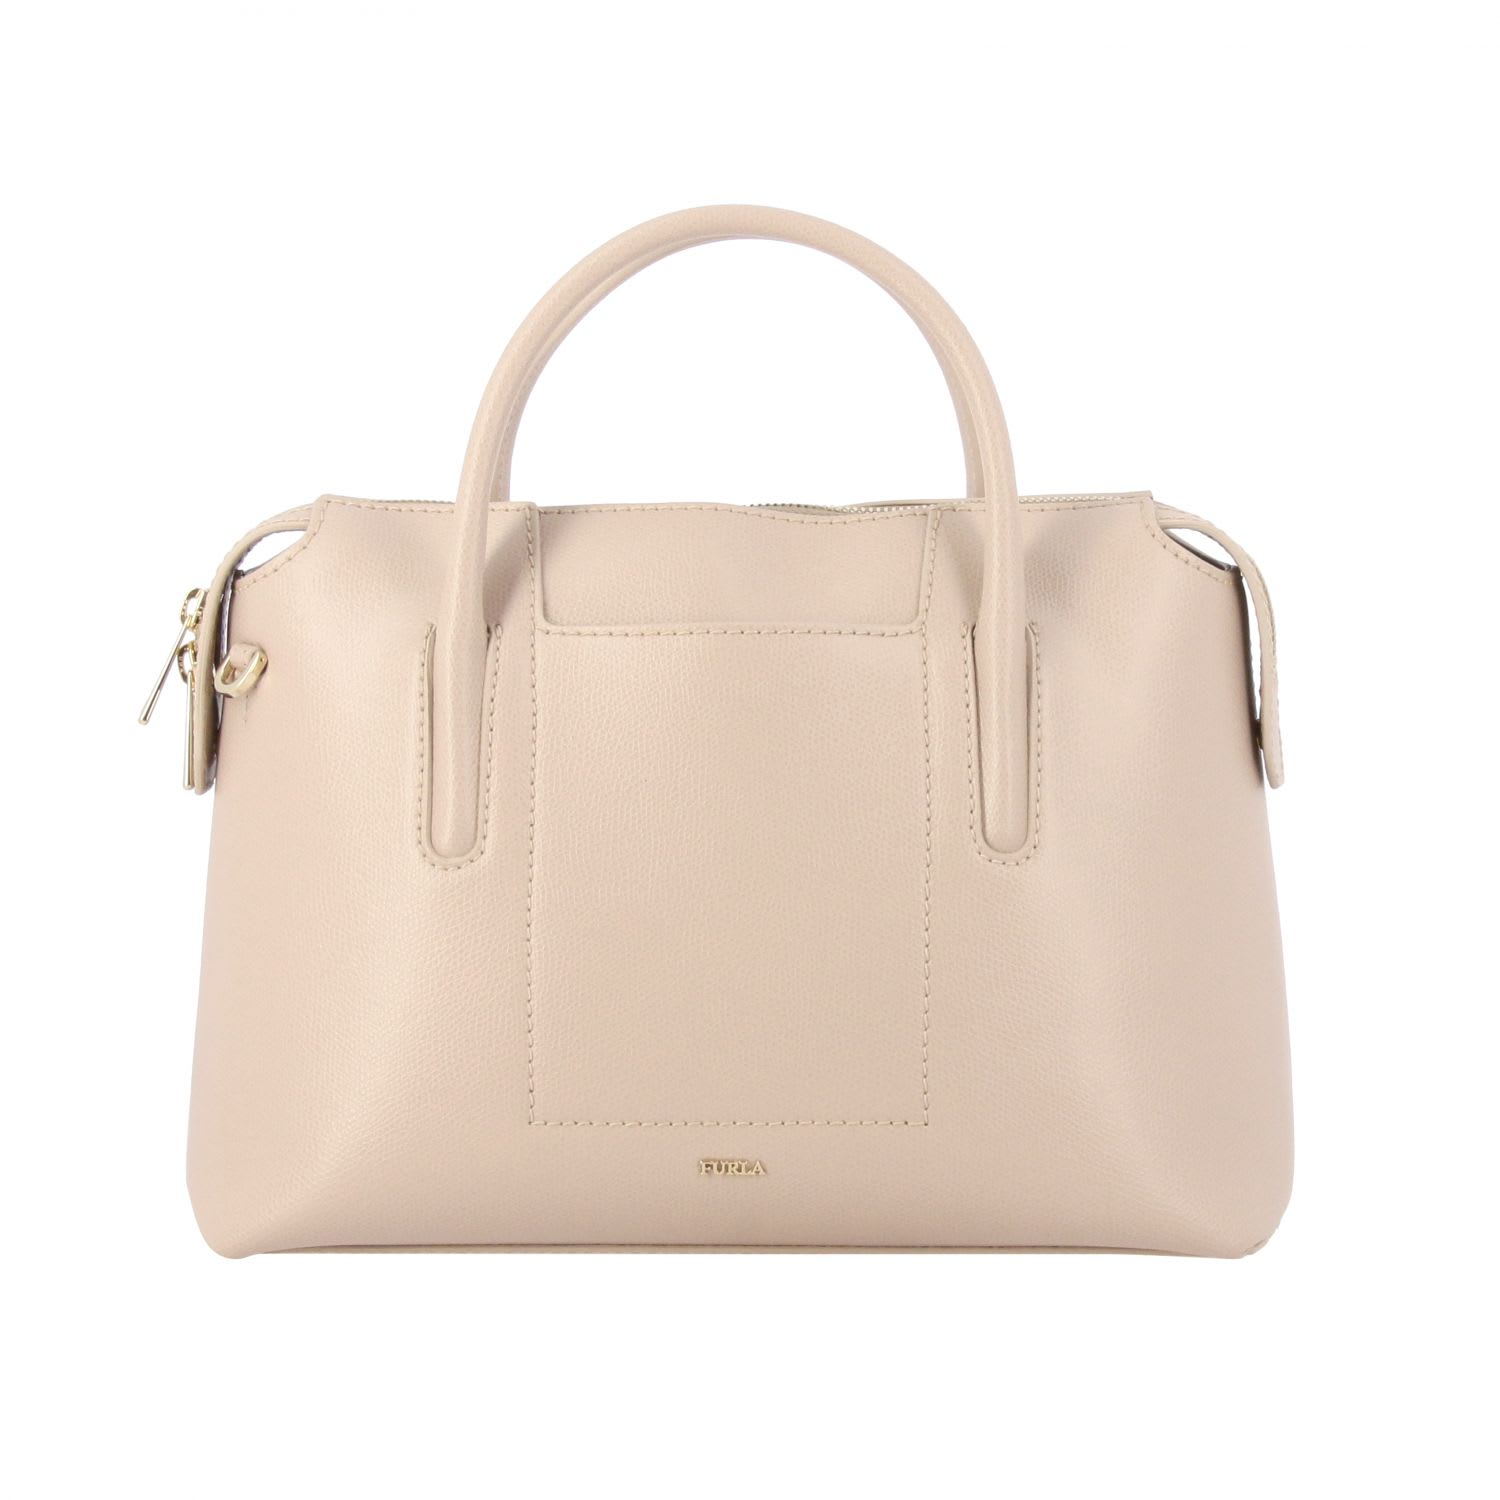 Furla Handbag Ares Furla Bag In Textured Leather With Double Handles